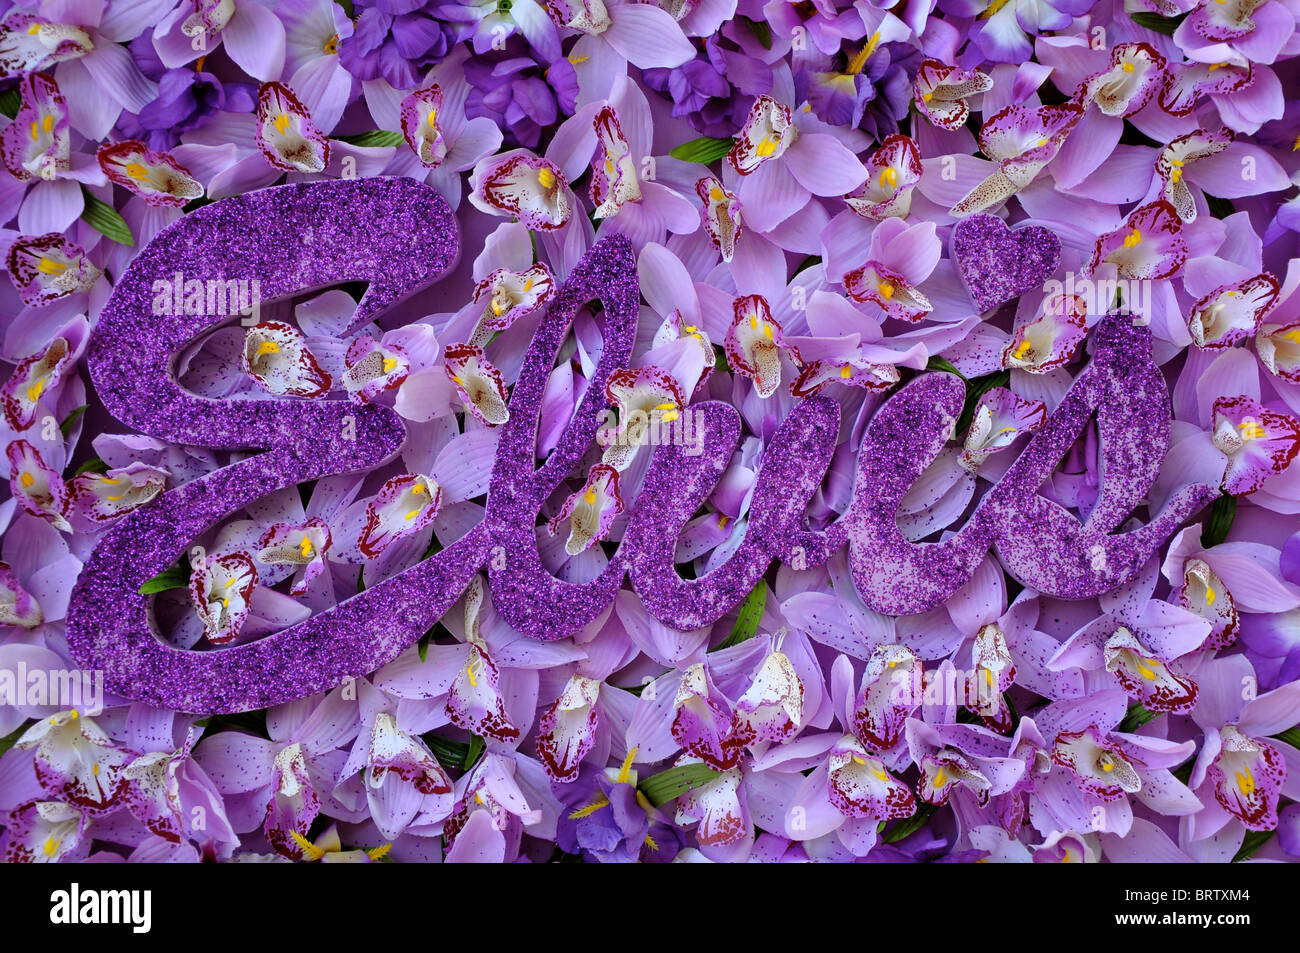 Elvis Presley floral tribute to celebrate his 75th birthday - Stock Image